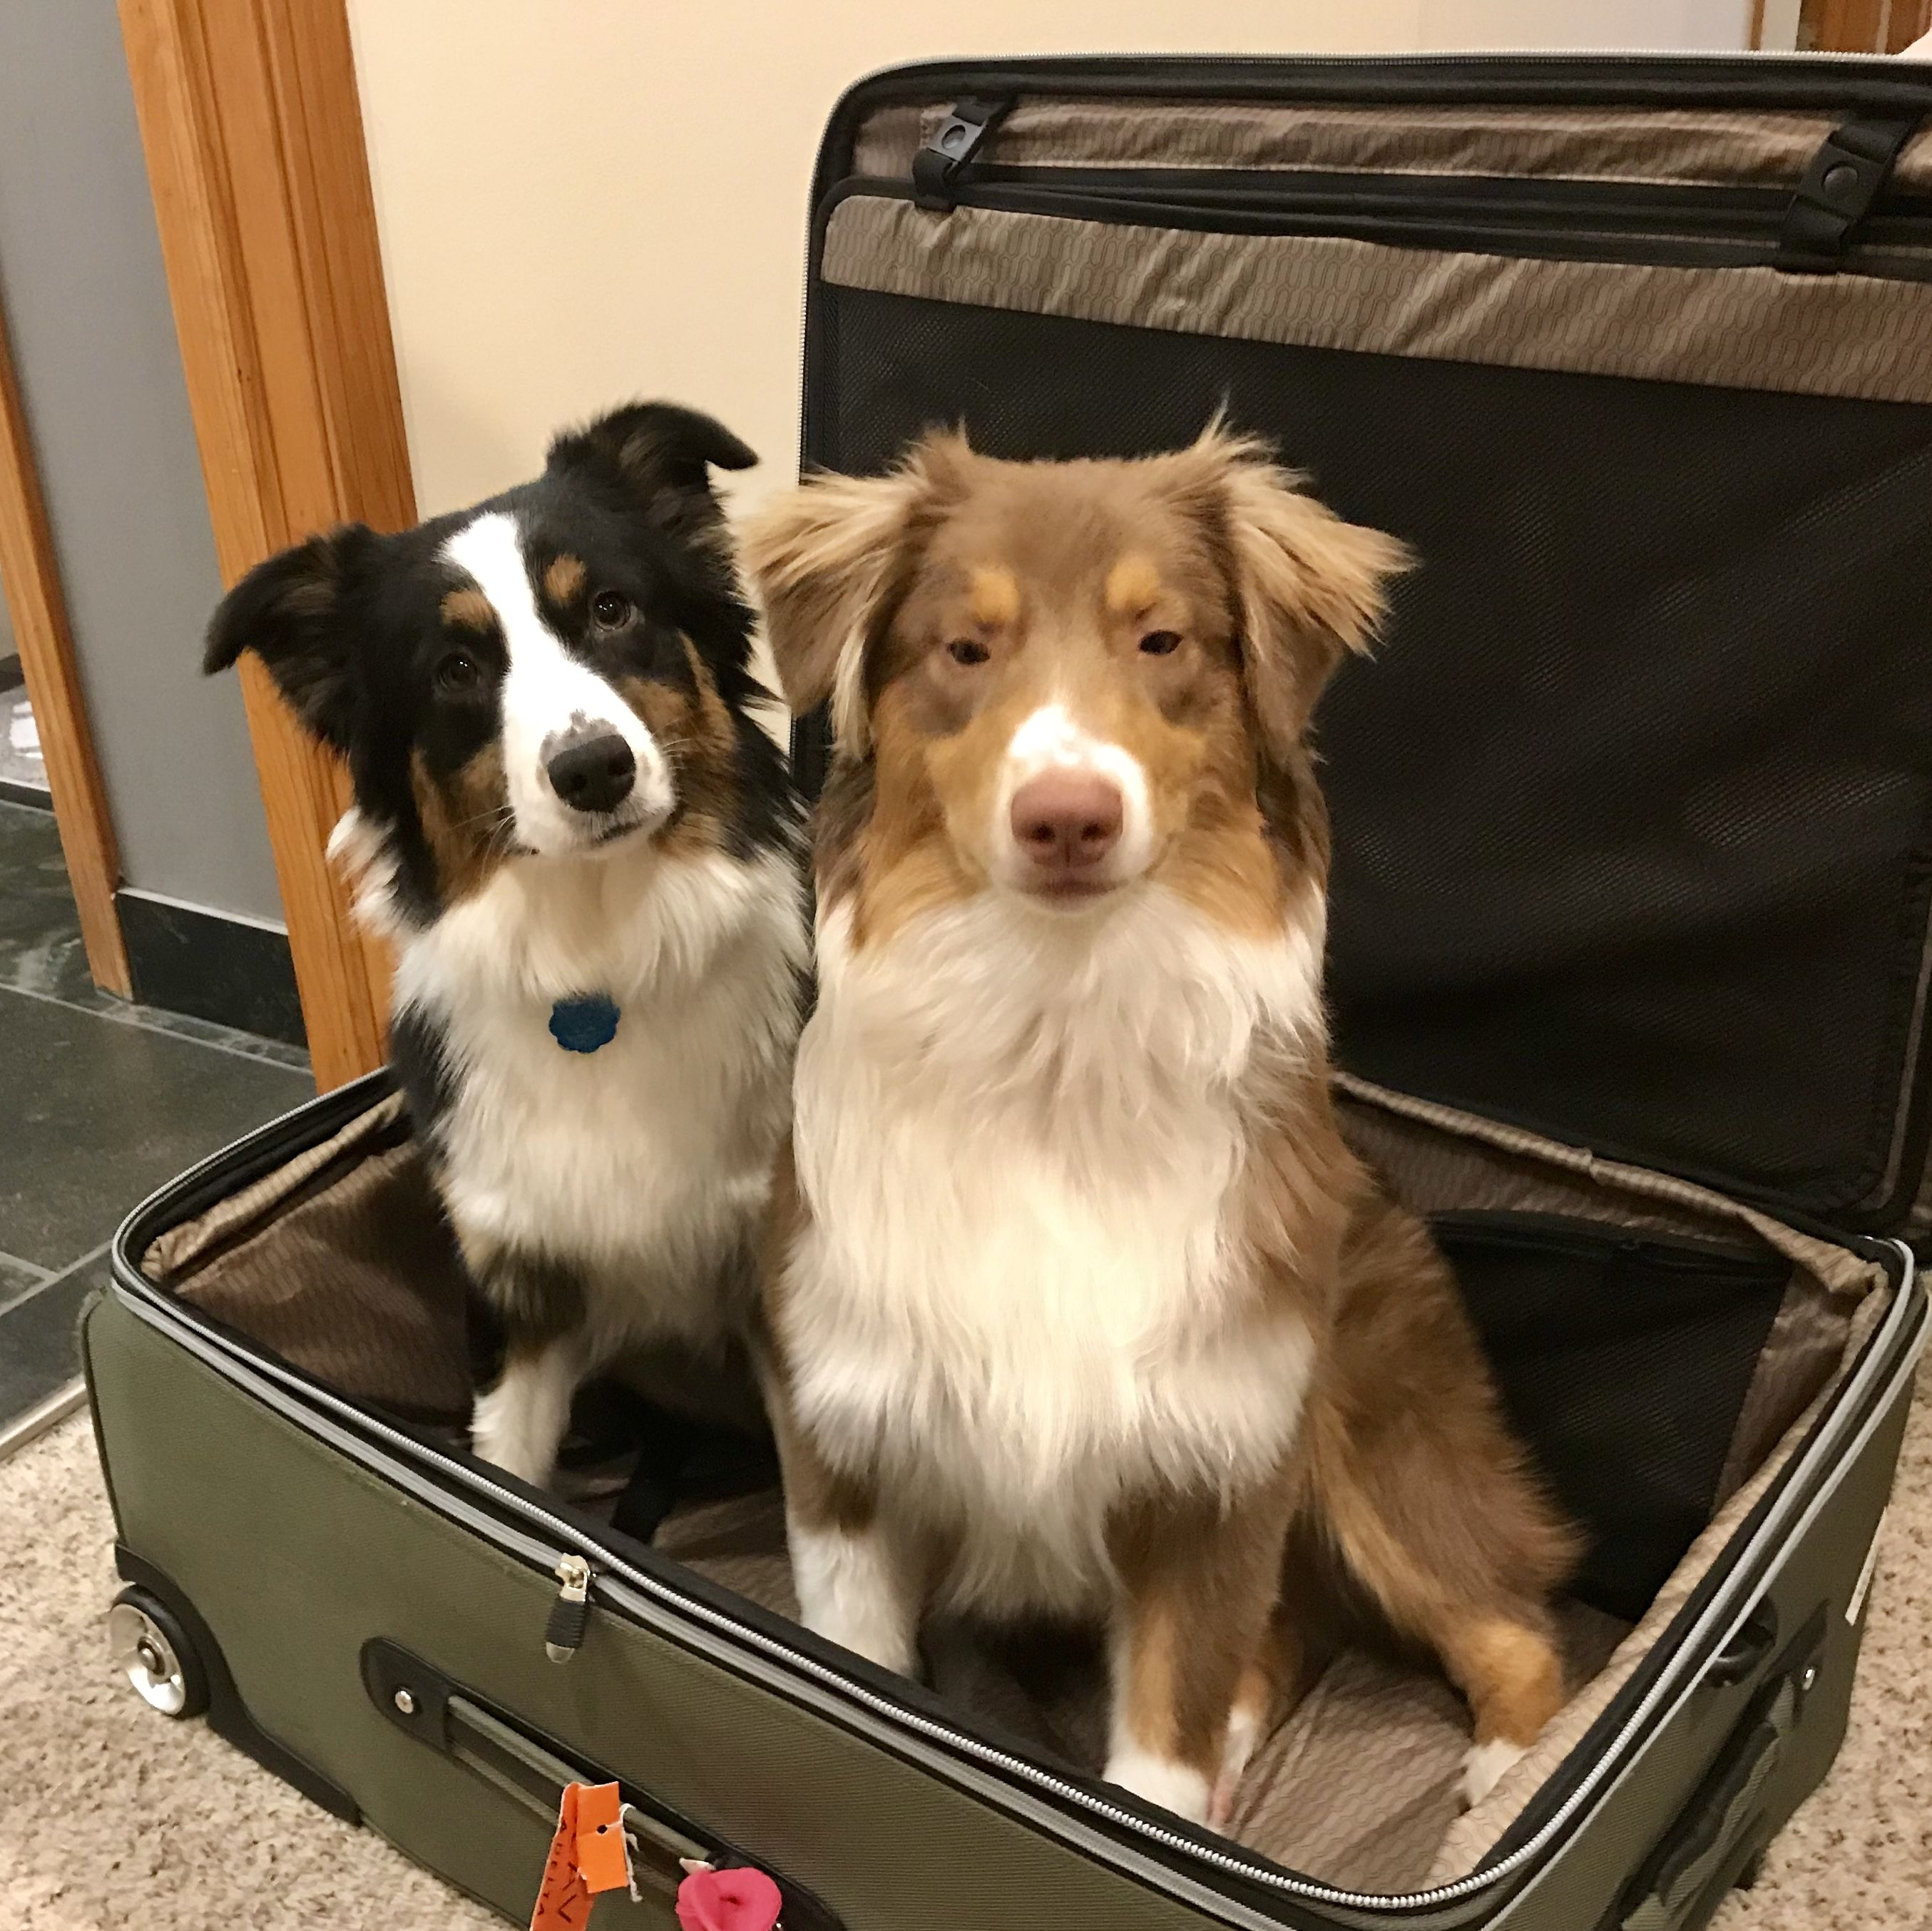 Our Australian Shepherds are objecting to our next trip.